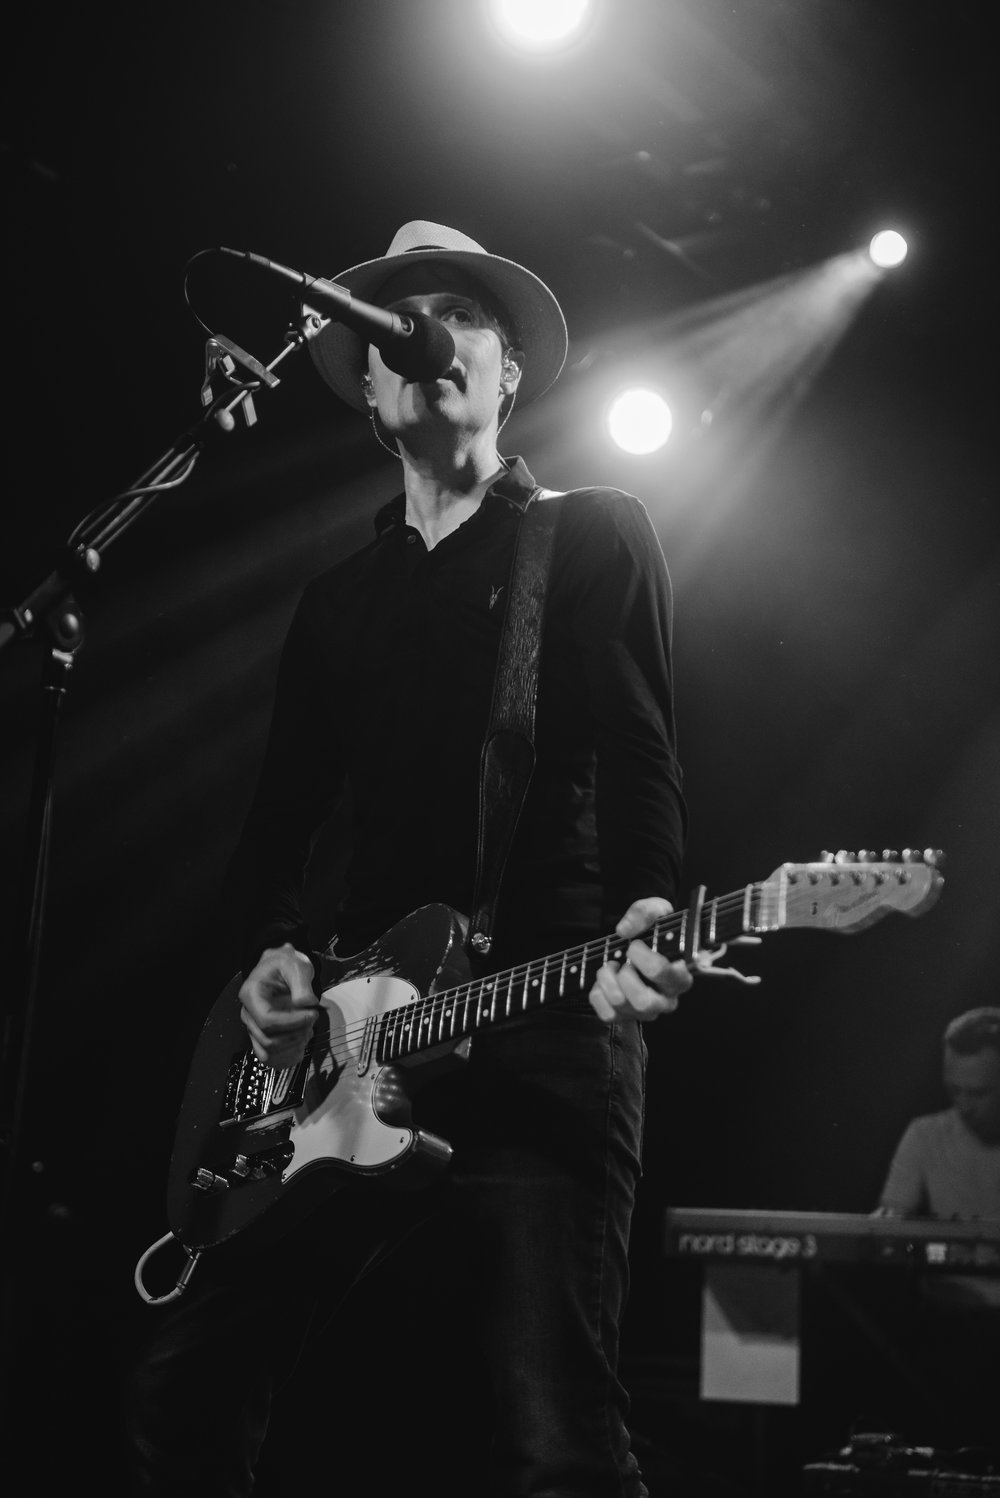 1_The_Fratellis-Commodore_Ballroom-Timothy_Nguyen-20180426 (9 of 22).jpg